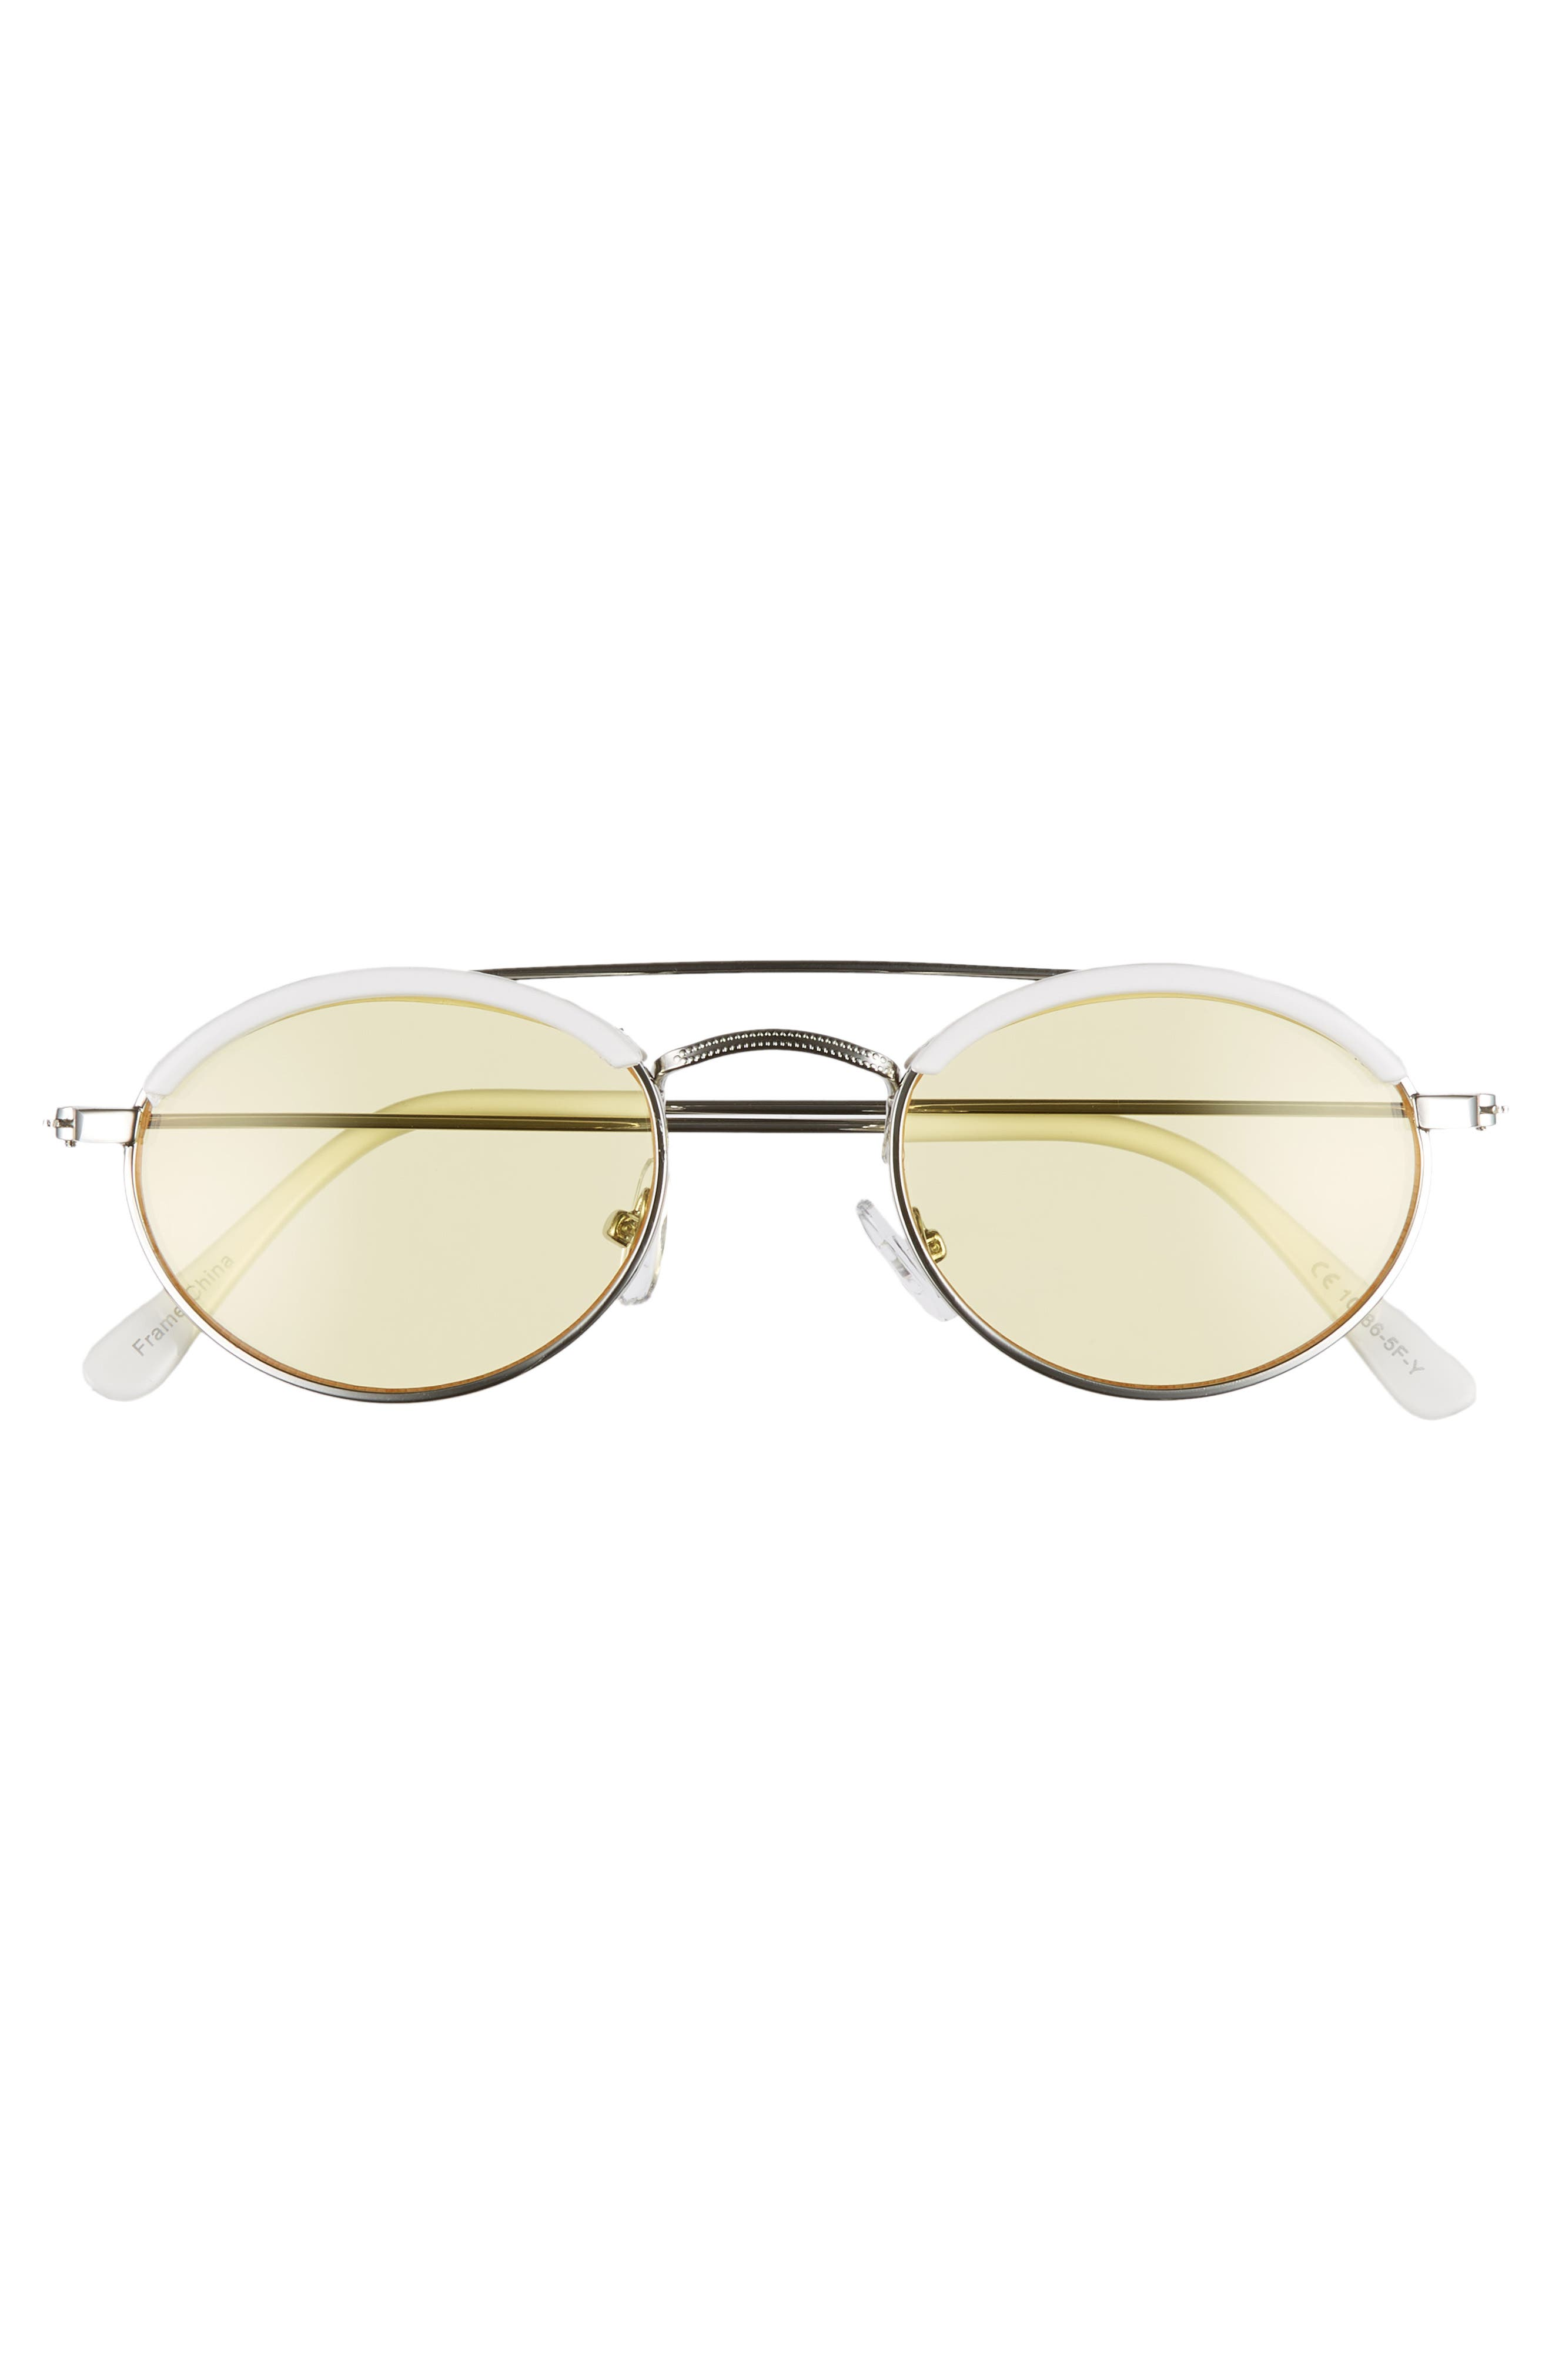 50mm Round Sunglasses,                             Alternate thumbnail 3, color,                             WHITE/ YELLOW